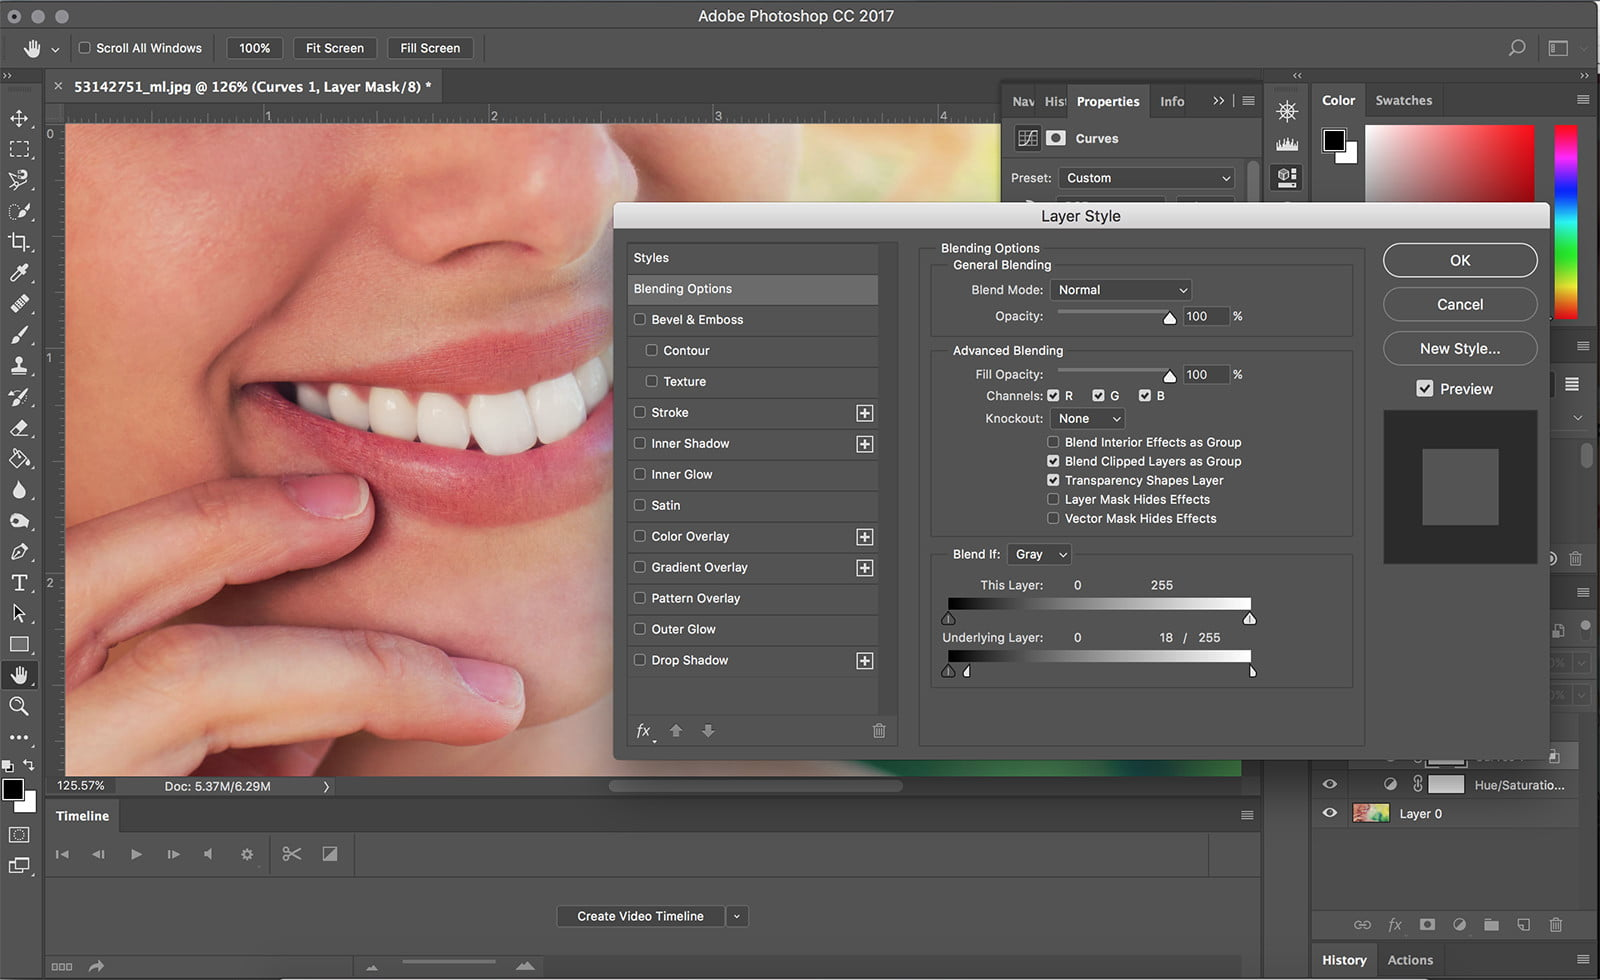 How to whiten teeth Adobe Community]